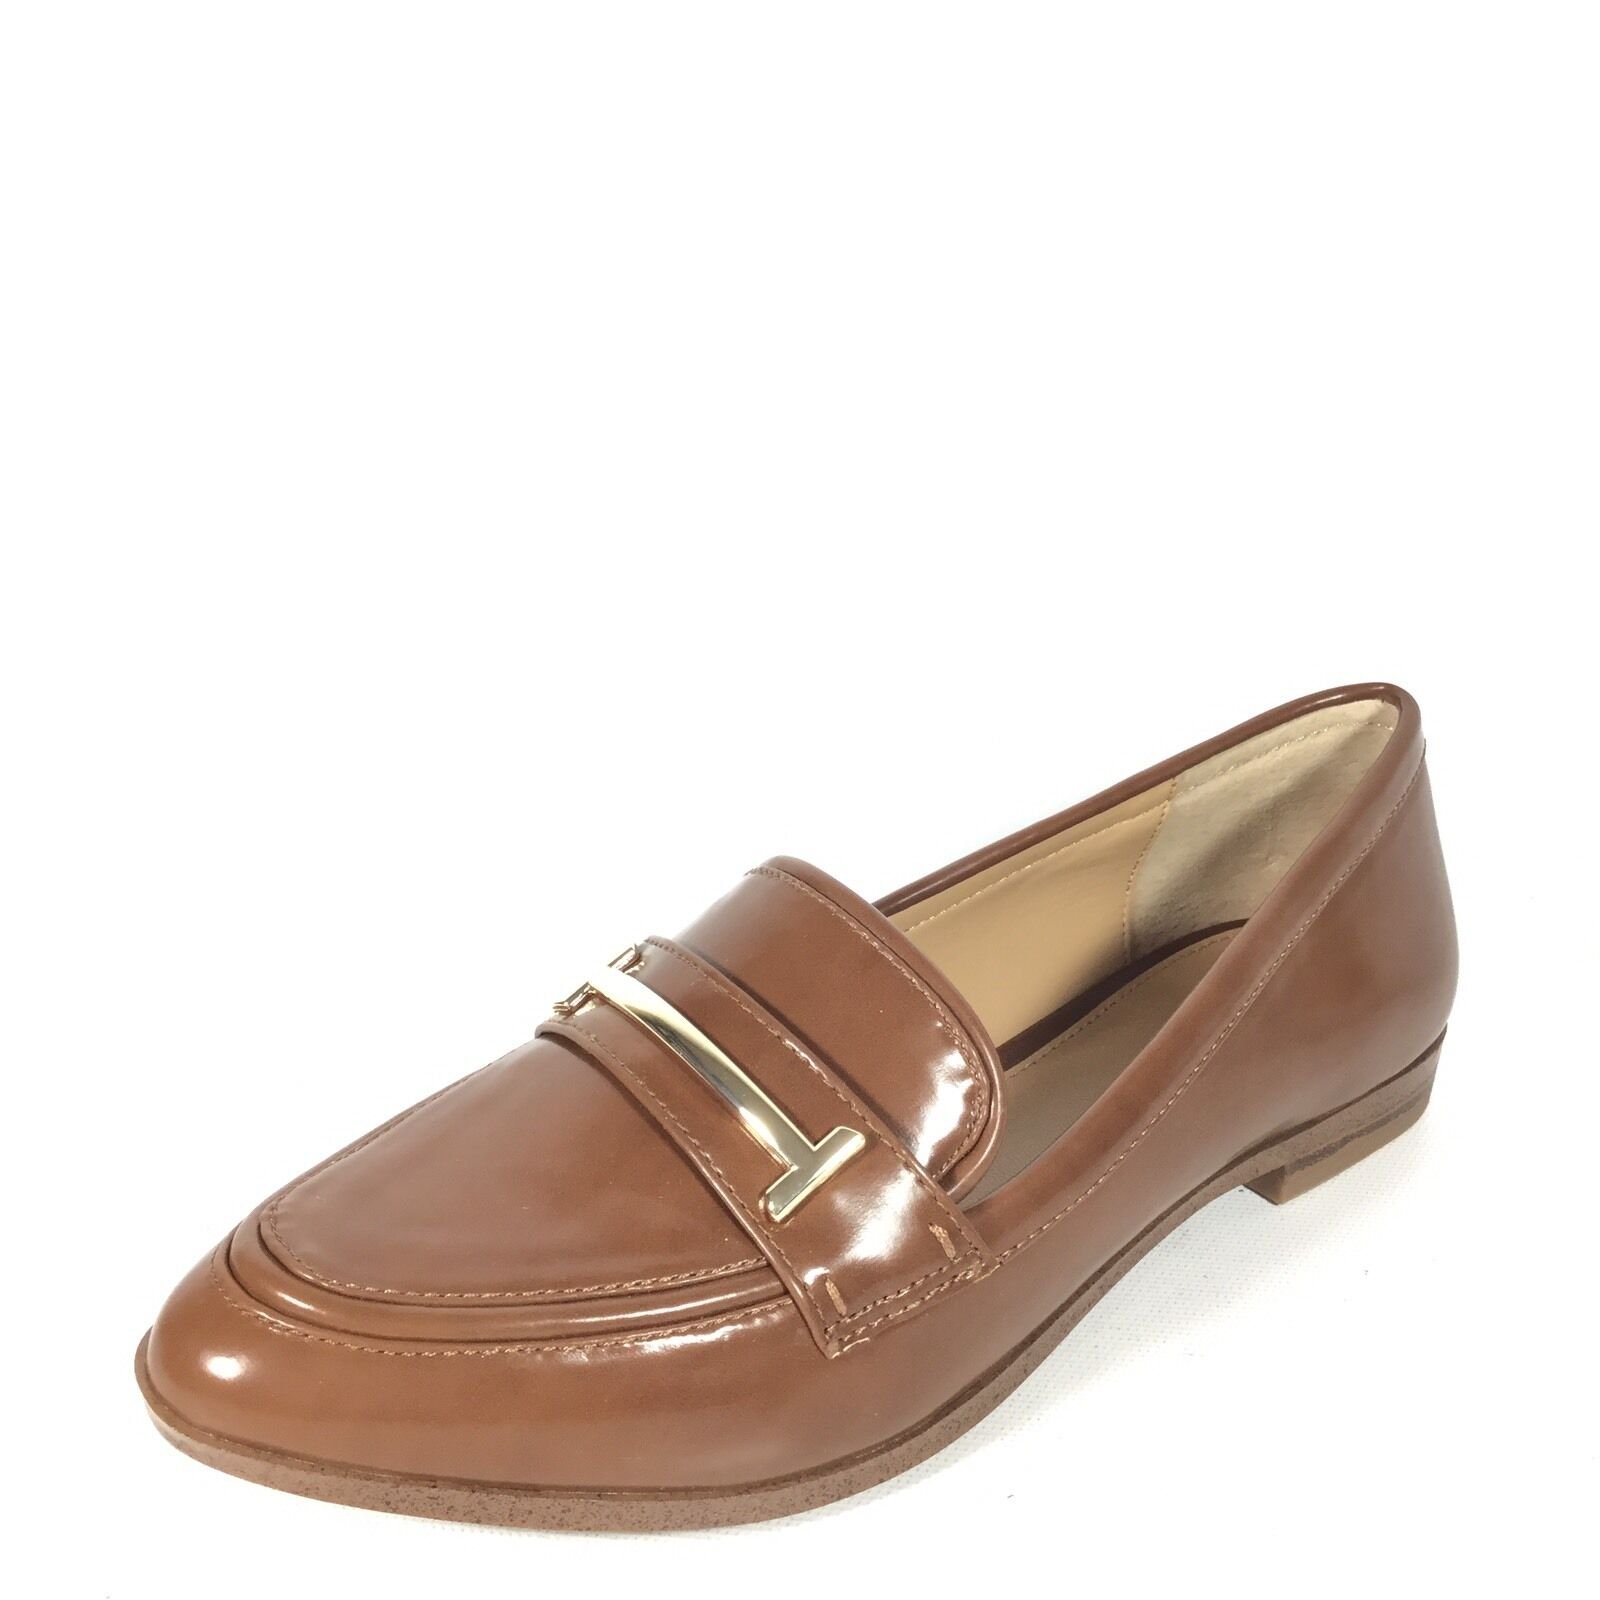 abfbd5332fc Alfani Womens Ameliaa Leather Closed Toe Loafers Cognac Size 7.0 ...